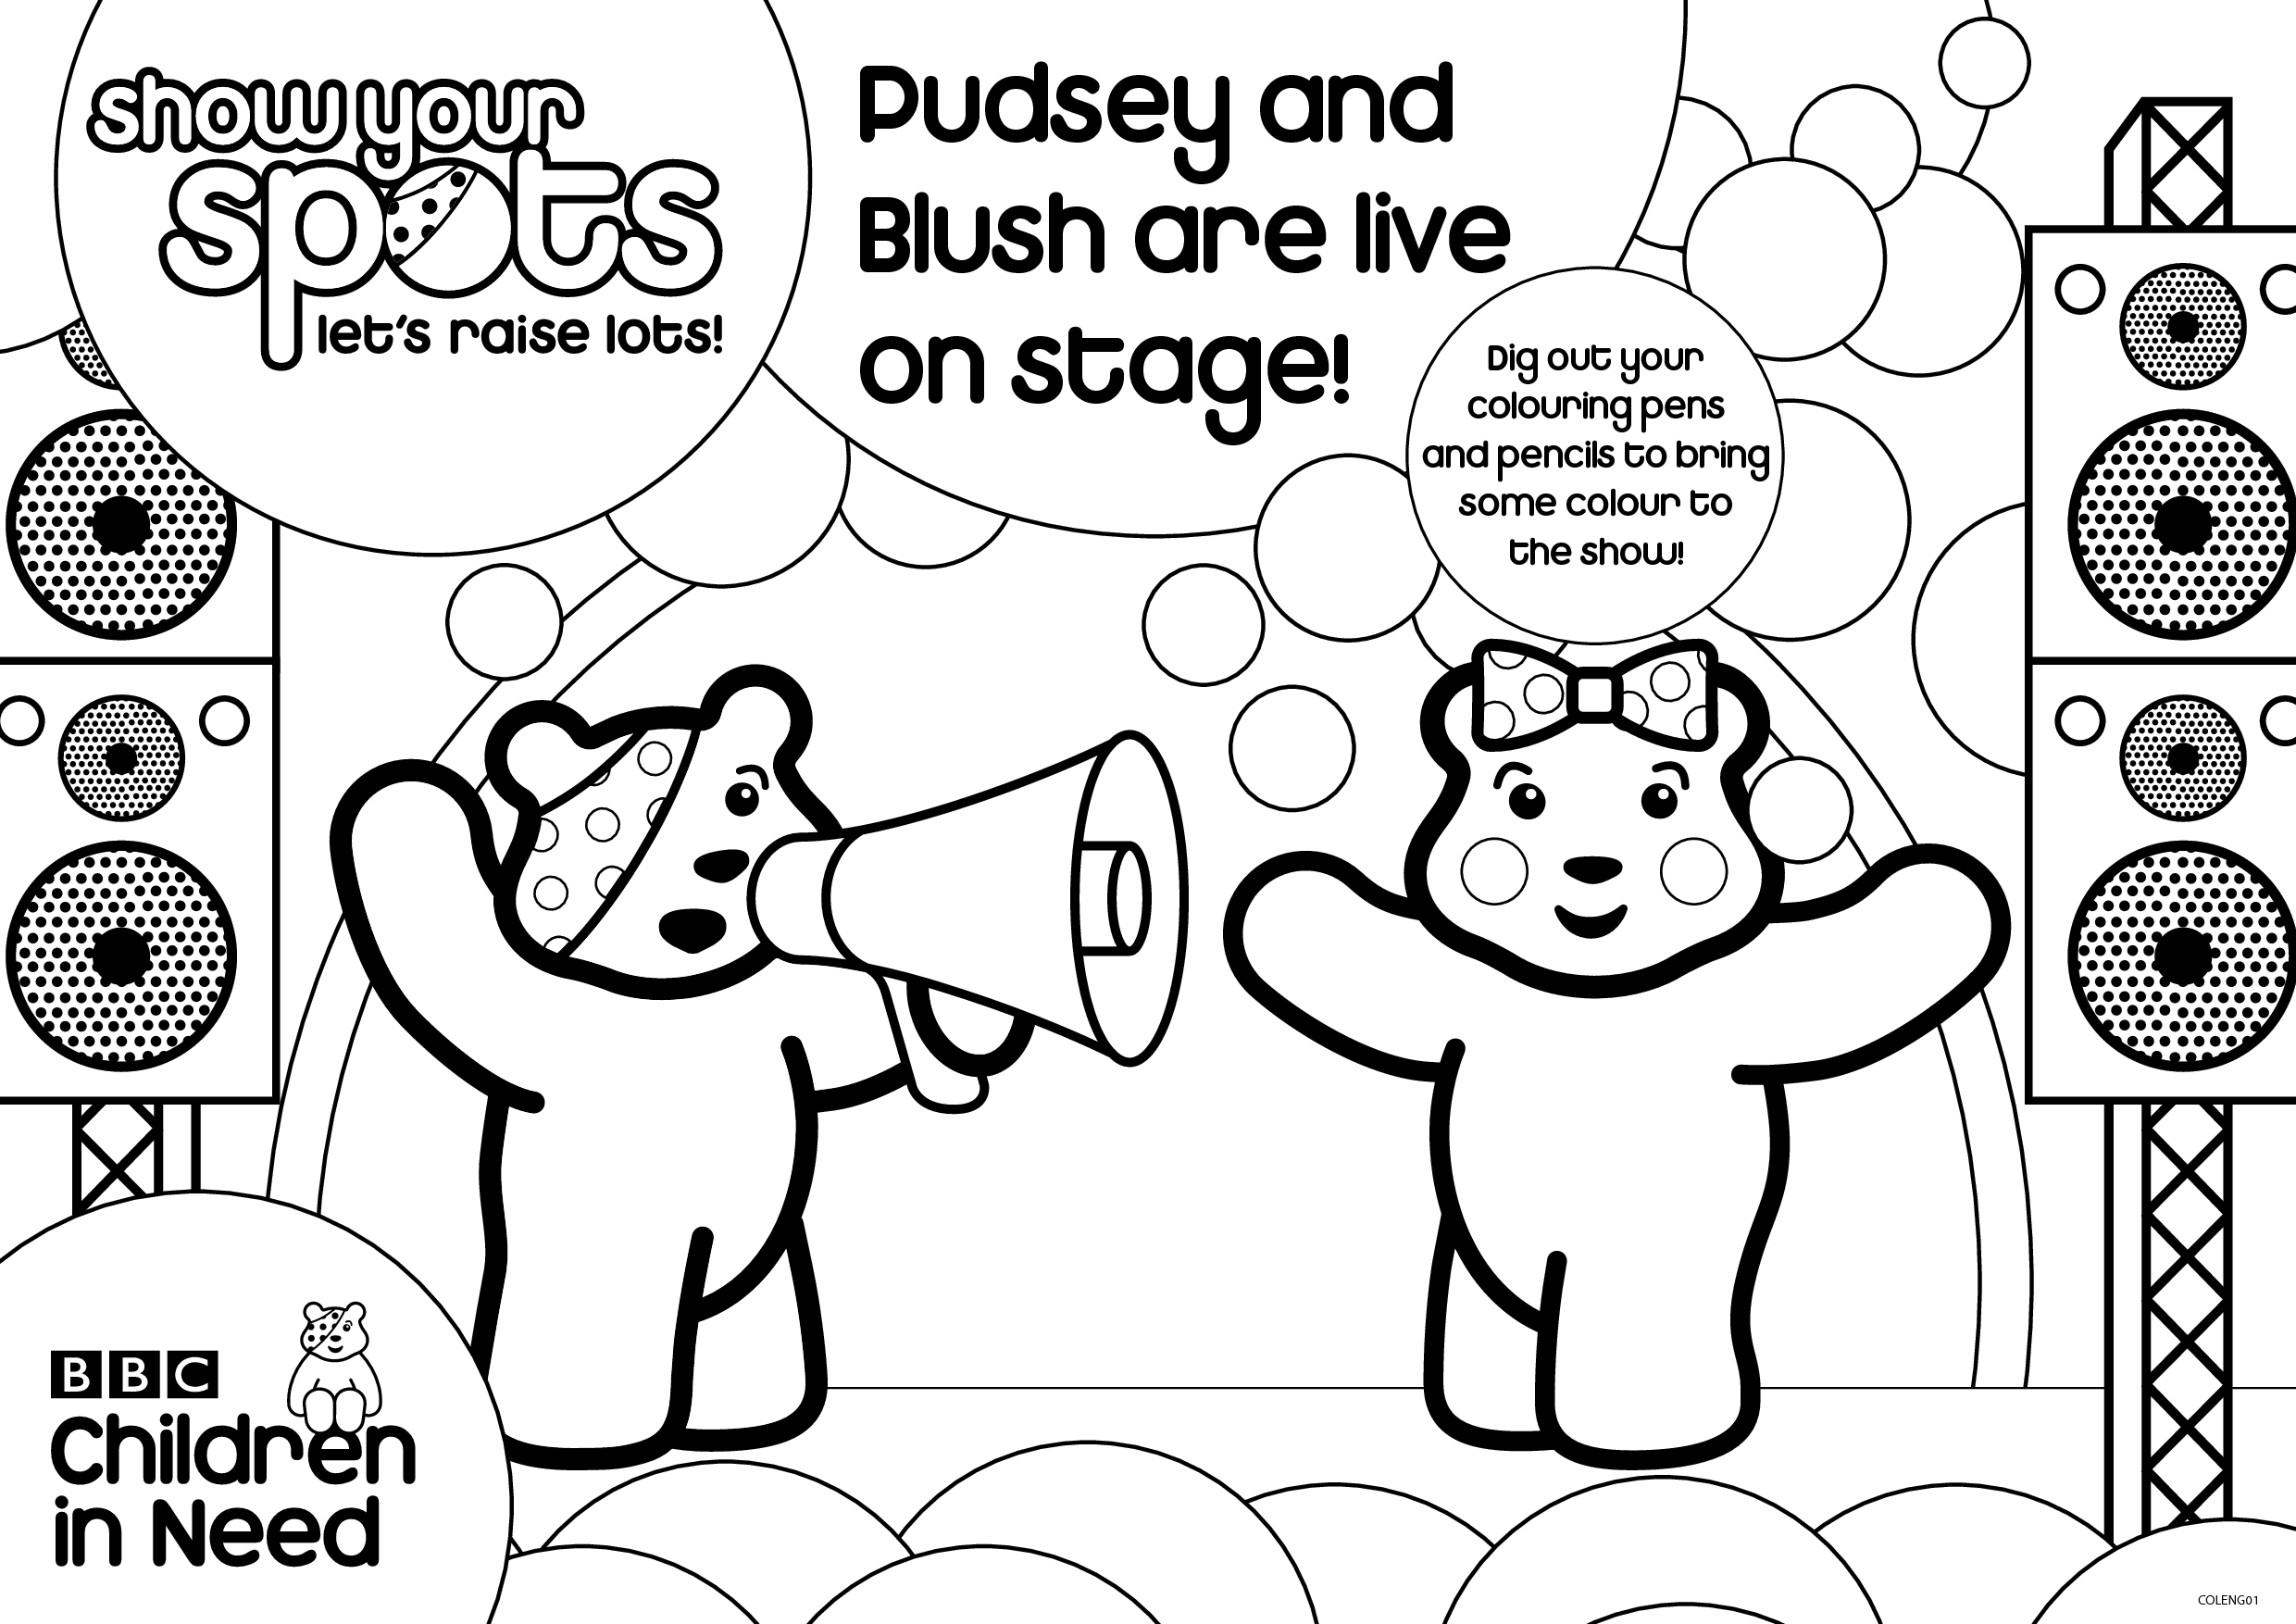 pudsey bear colouring sheets children in need pudsey bear coloring pagetoby39s children sheets colouring pudsey bear